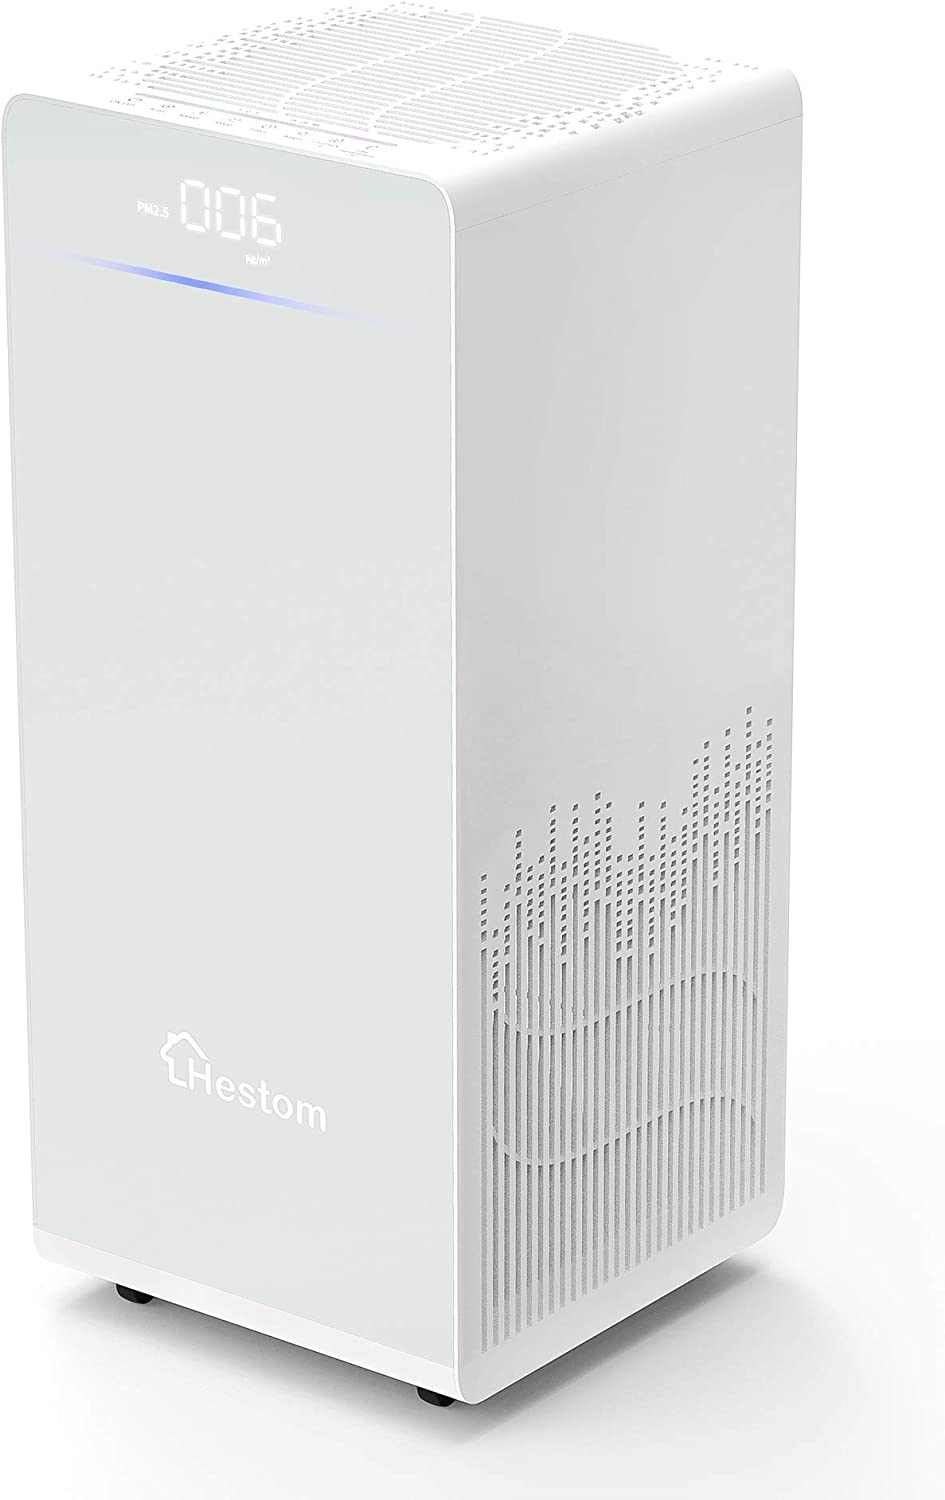 Hestom Air Purifier for Home Large Room, 1500 Sq Ft Smart H13 True HEPA Air Cleaner for Pets and smoke, Quiet Air Filter Unit for Office Bedroom Kitchen, Auto Mode, Negative Ion, White